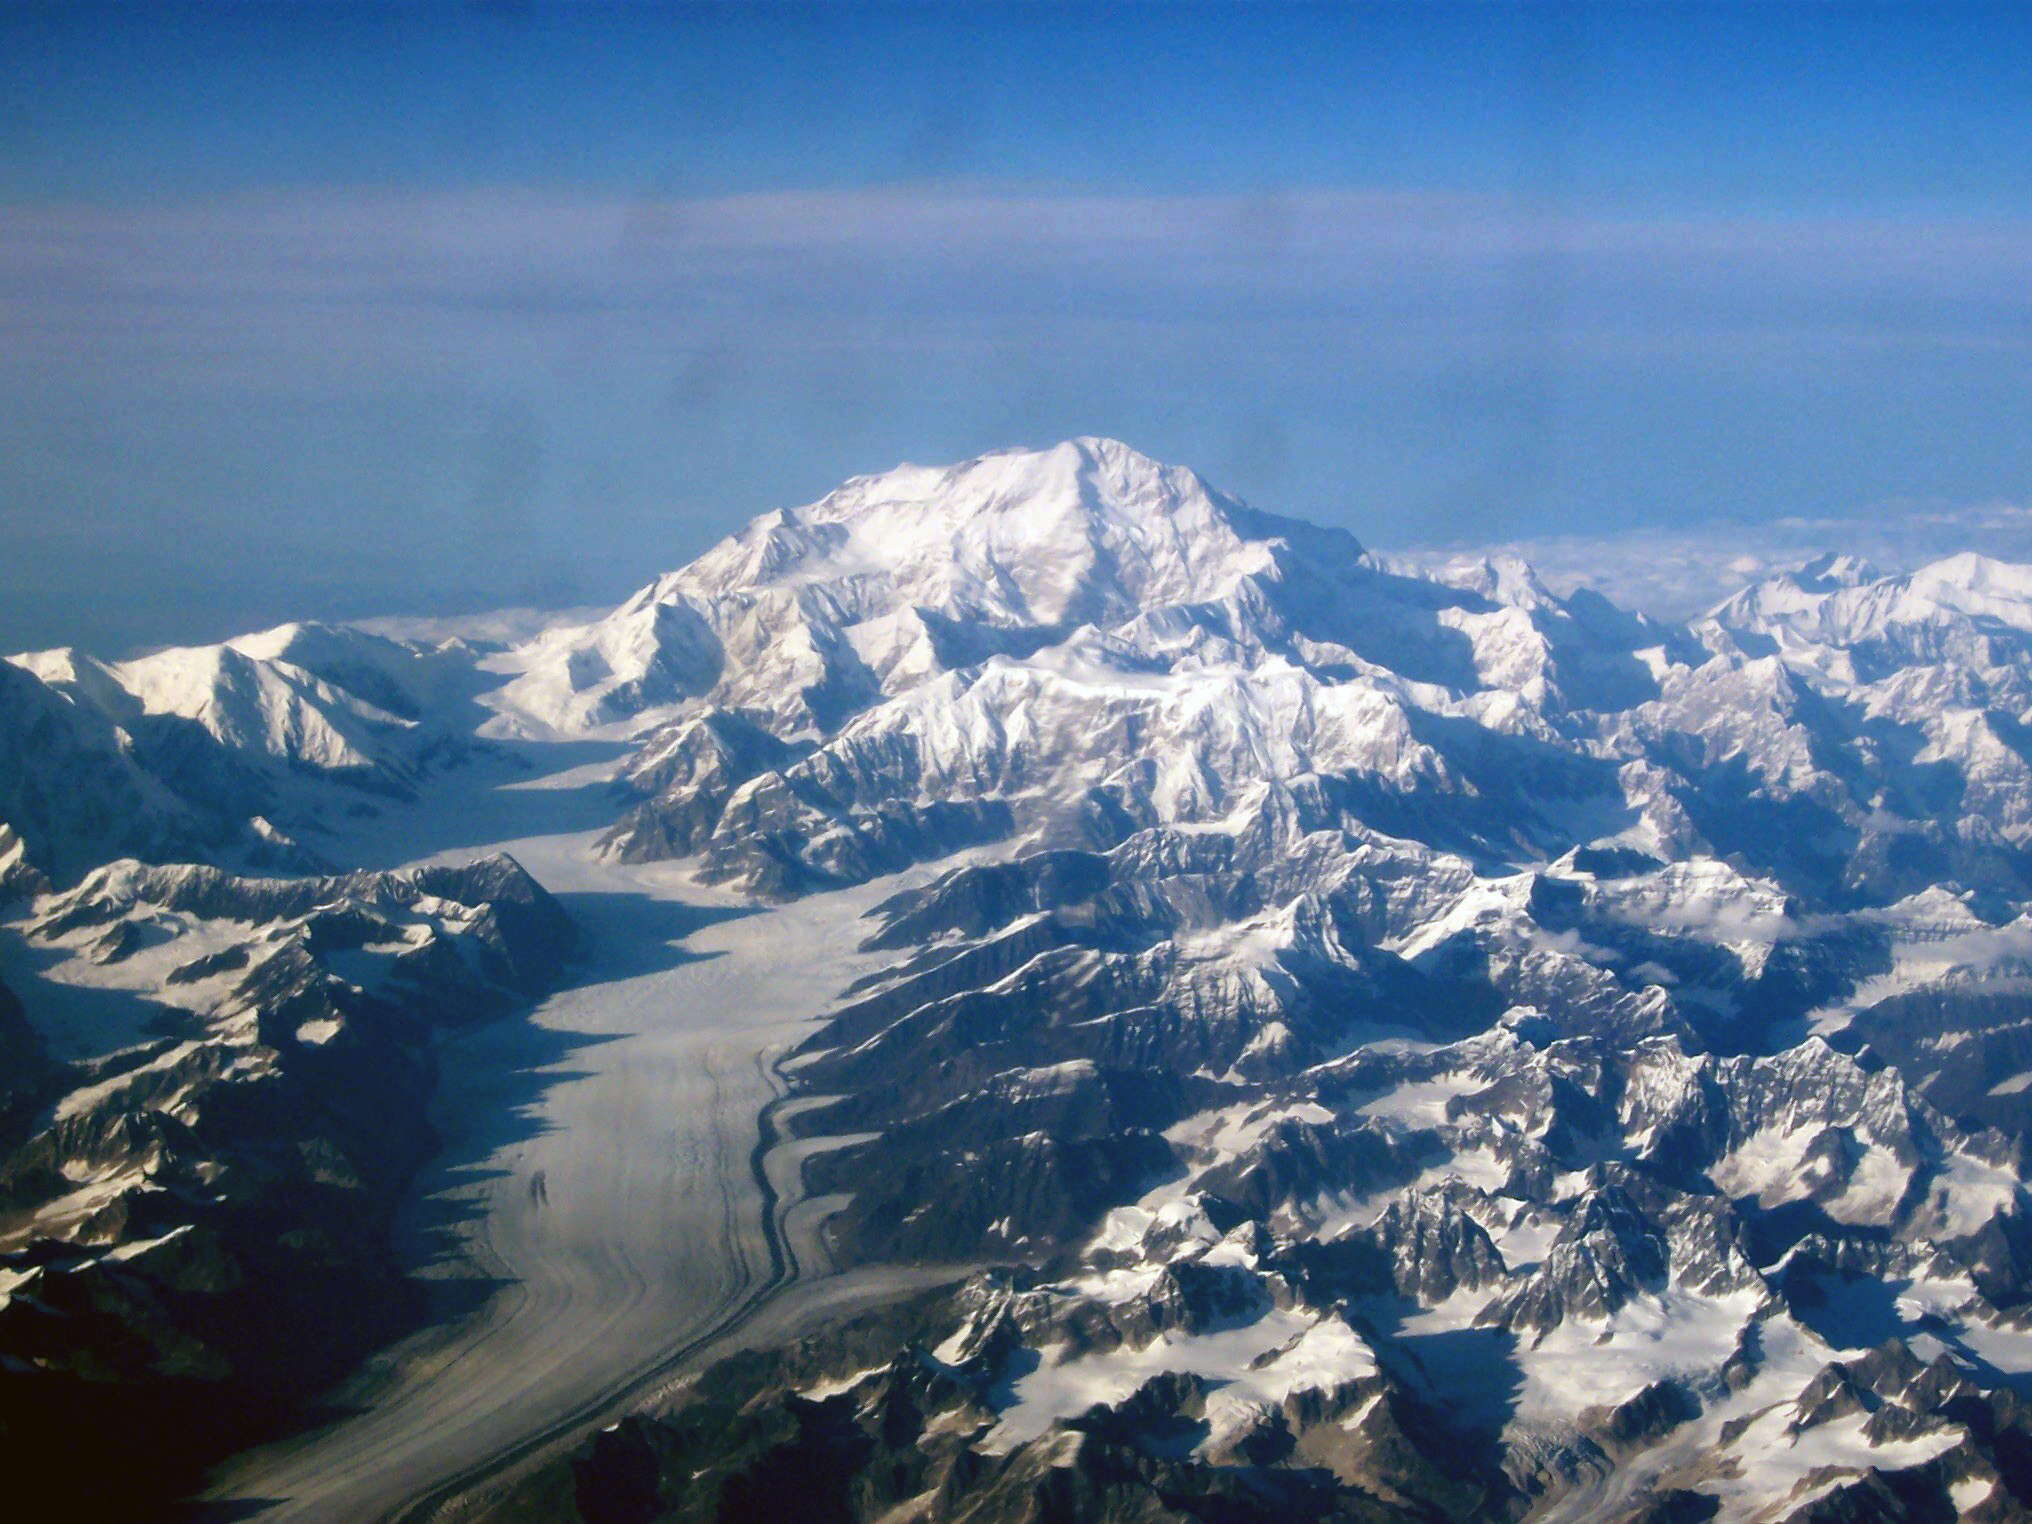 In An Aerial Image A Mountain Is Surrounded By Many Smaller Mountains And A Glacier